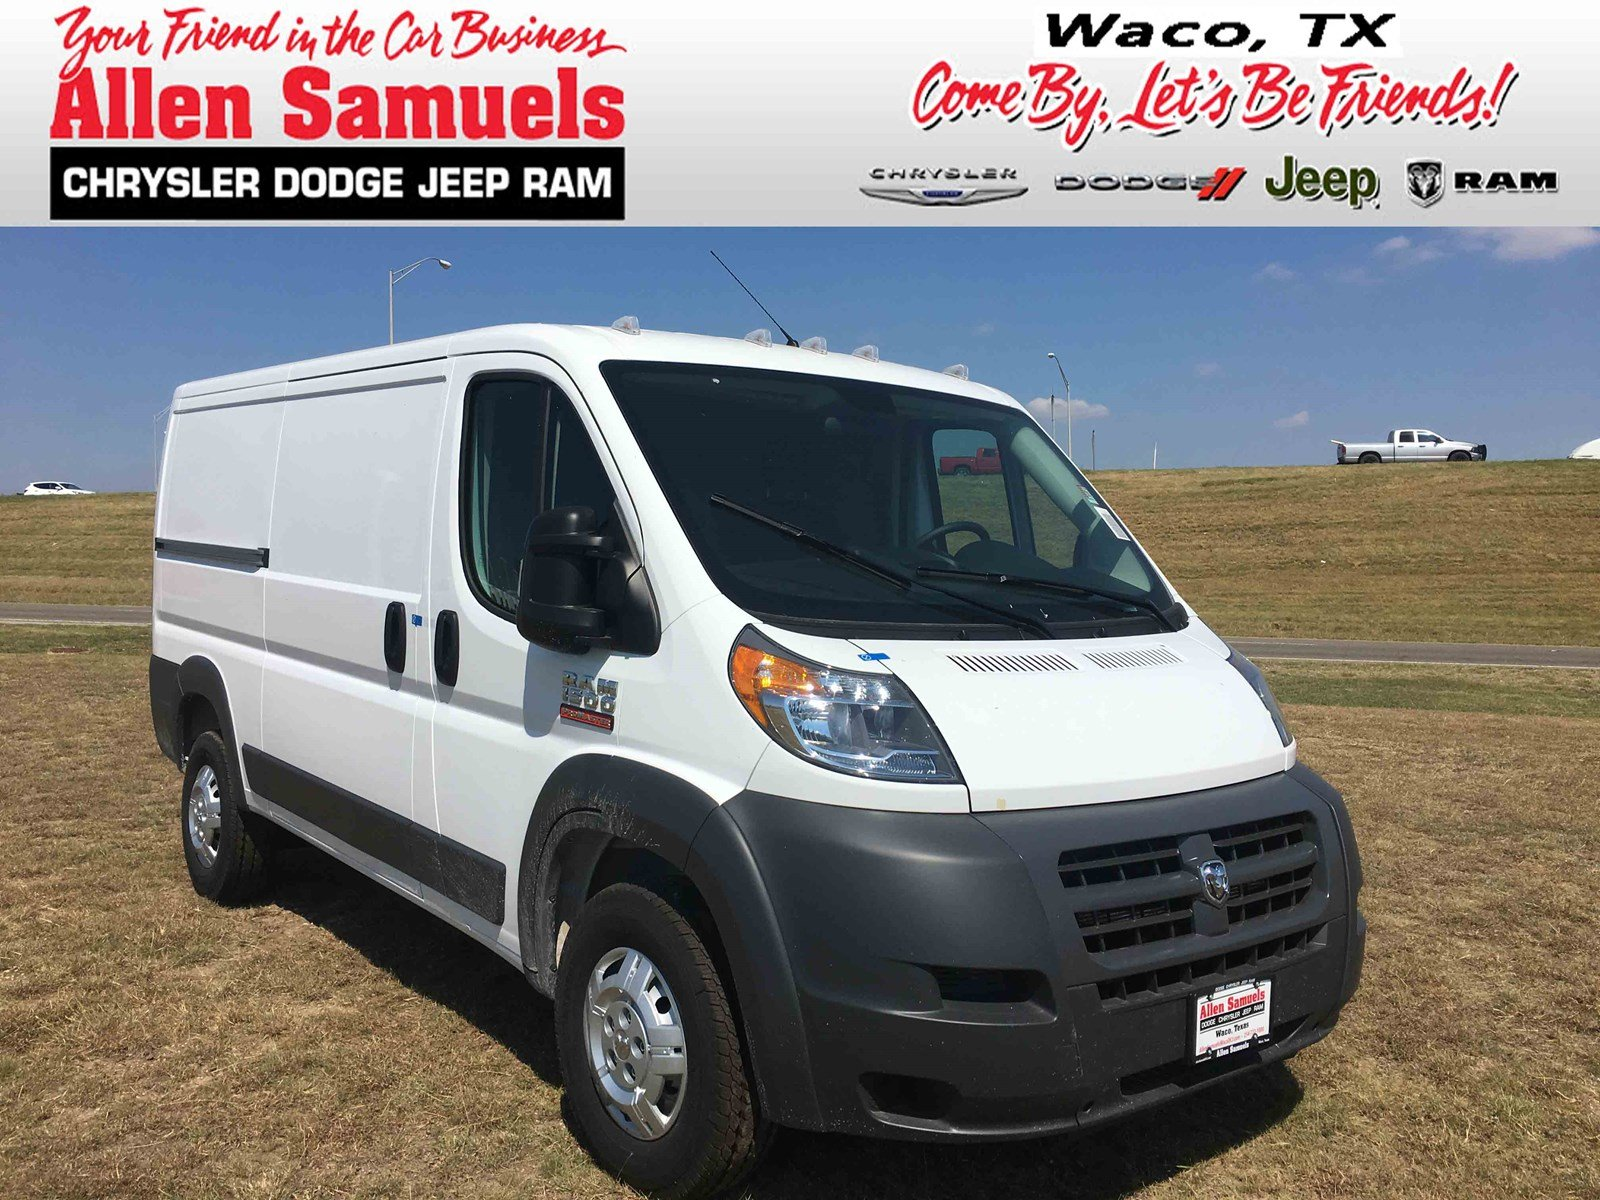 new 2017 ram promaster cargo van cargo van in waco 17t70019 allen samuels dodge chrysler jeep ram. Black Bedroom Furniture Sets. Home Design Ideas